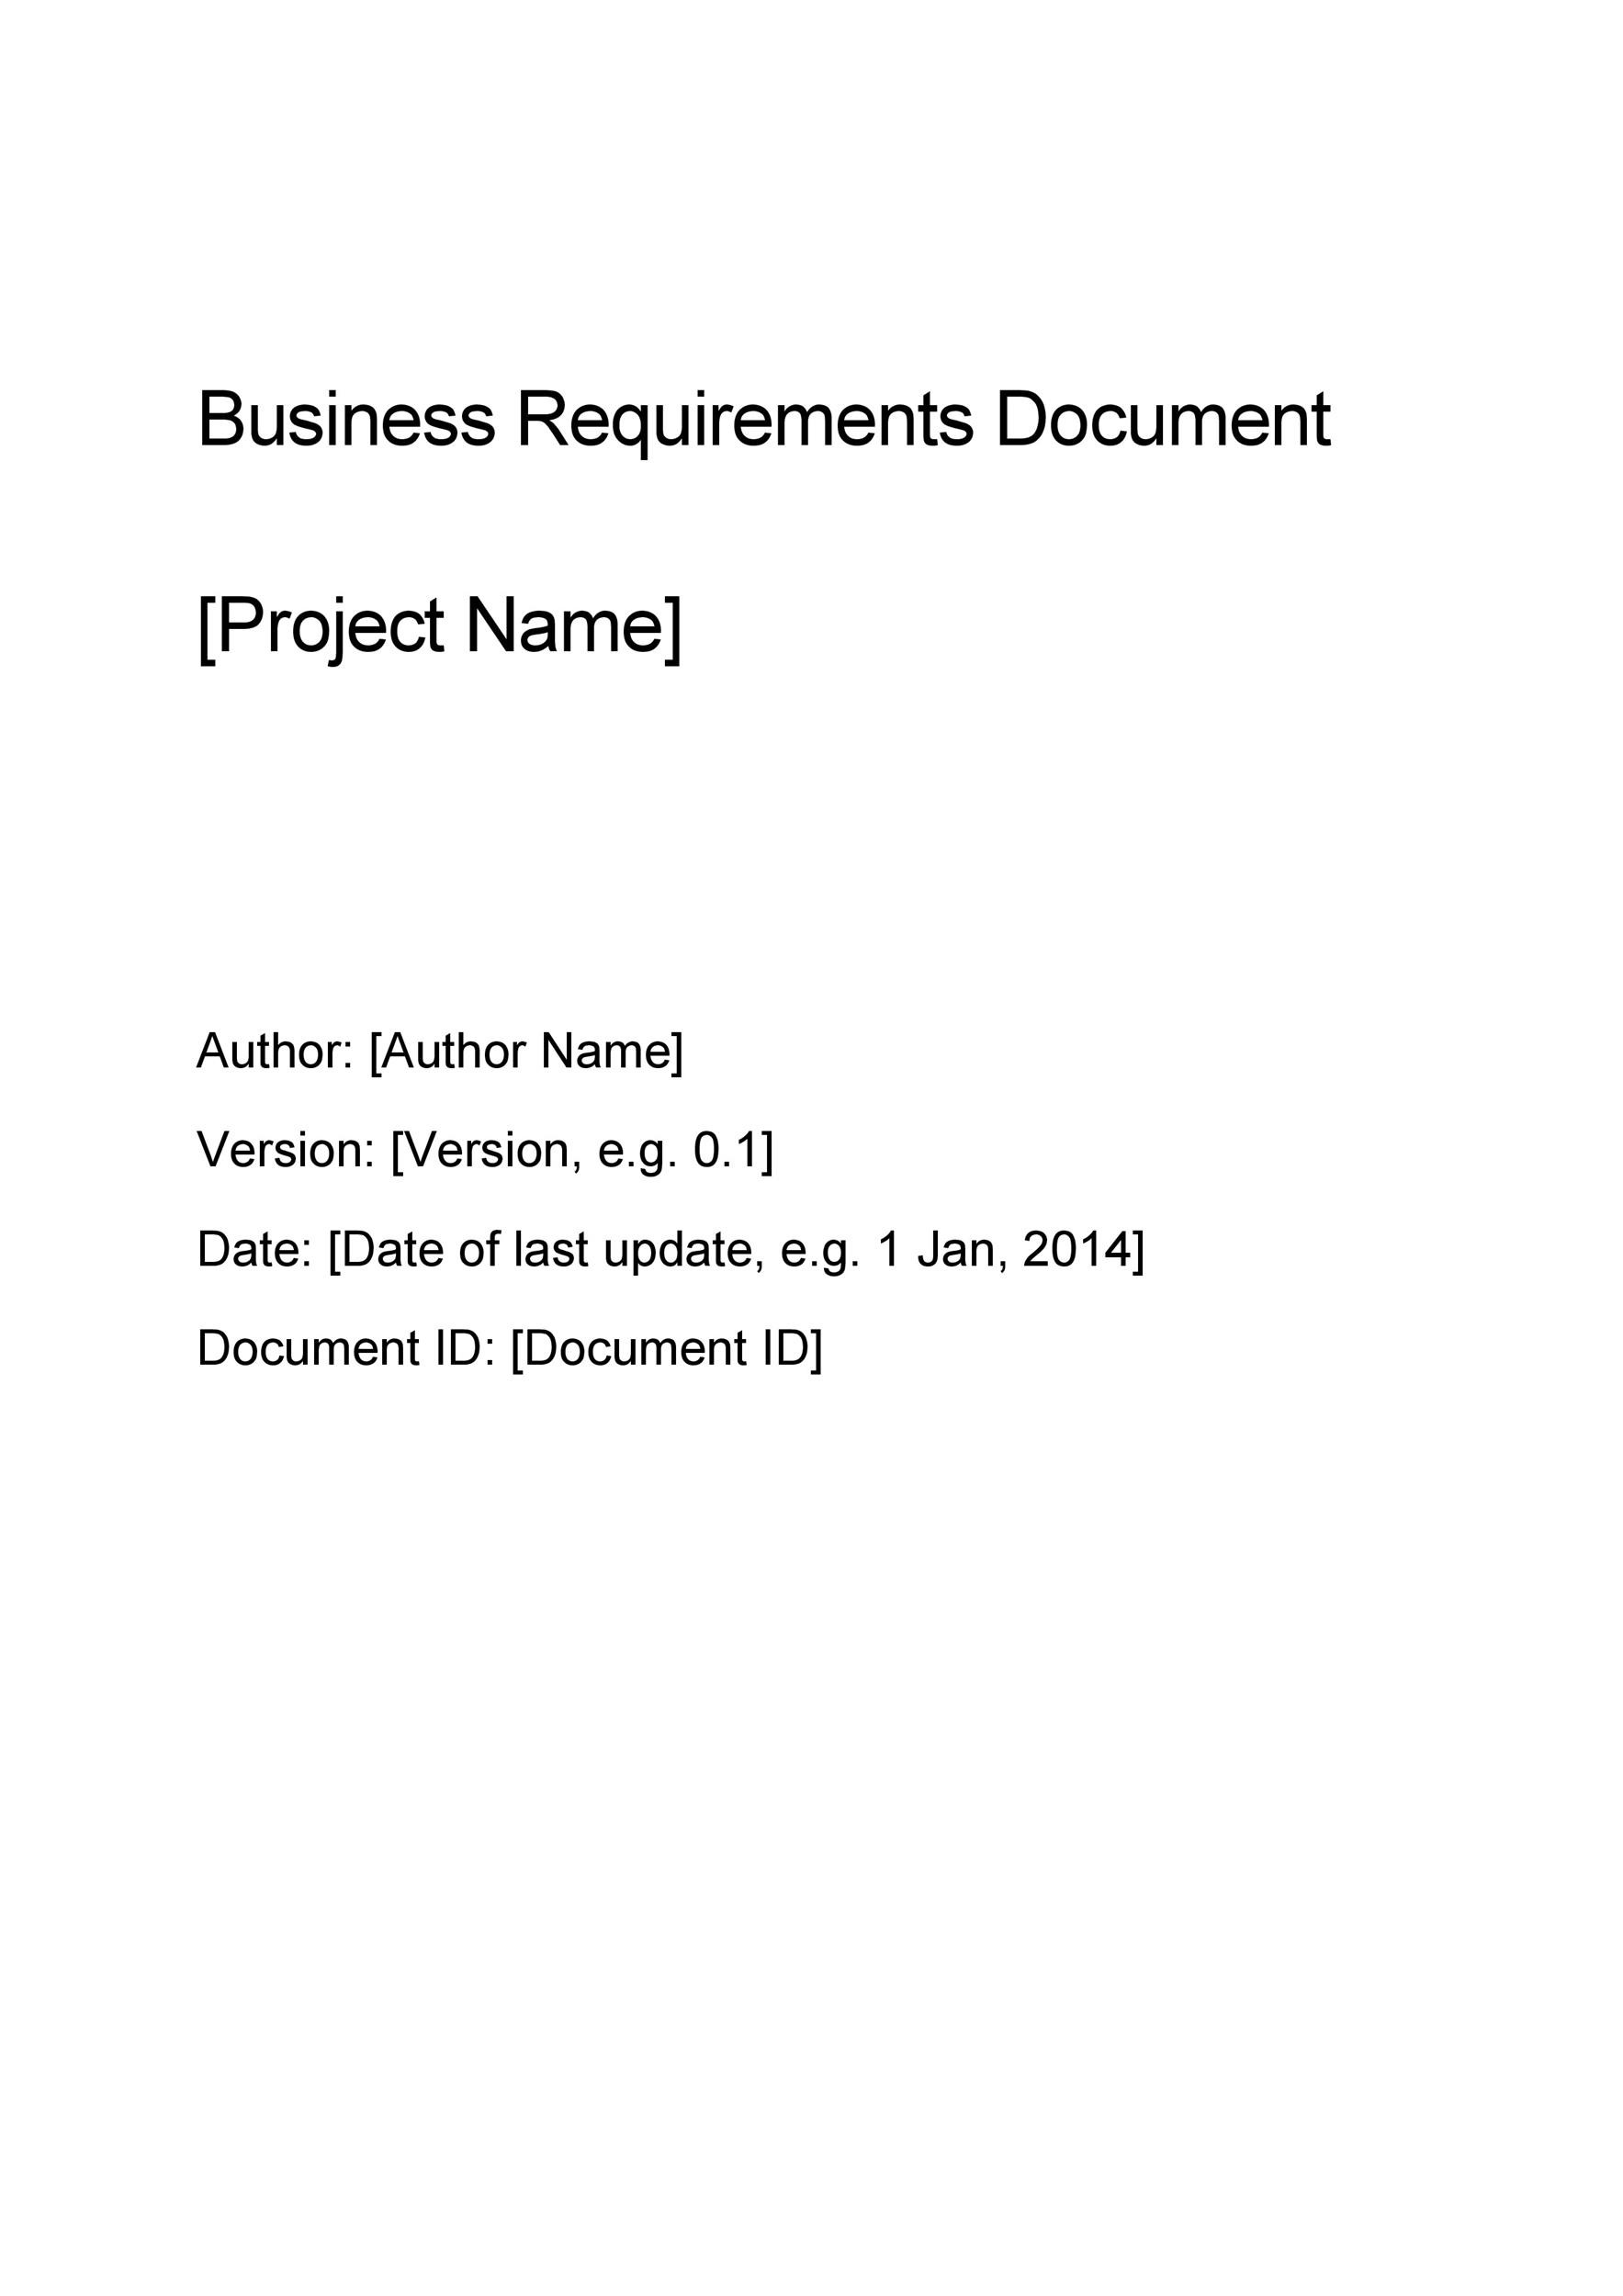 40 simple business requirements document templates template lab free business requirements document template 04 wajeb